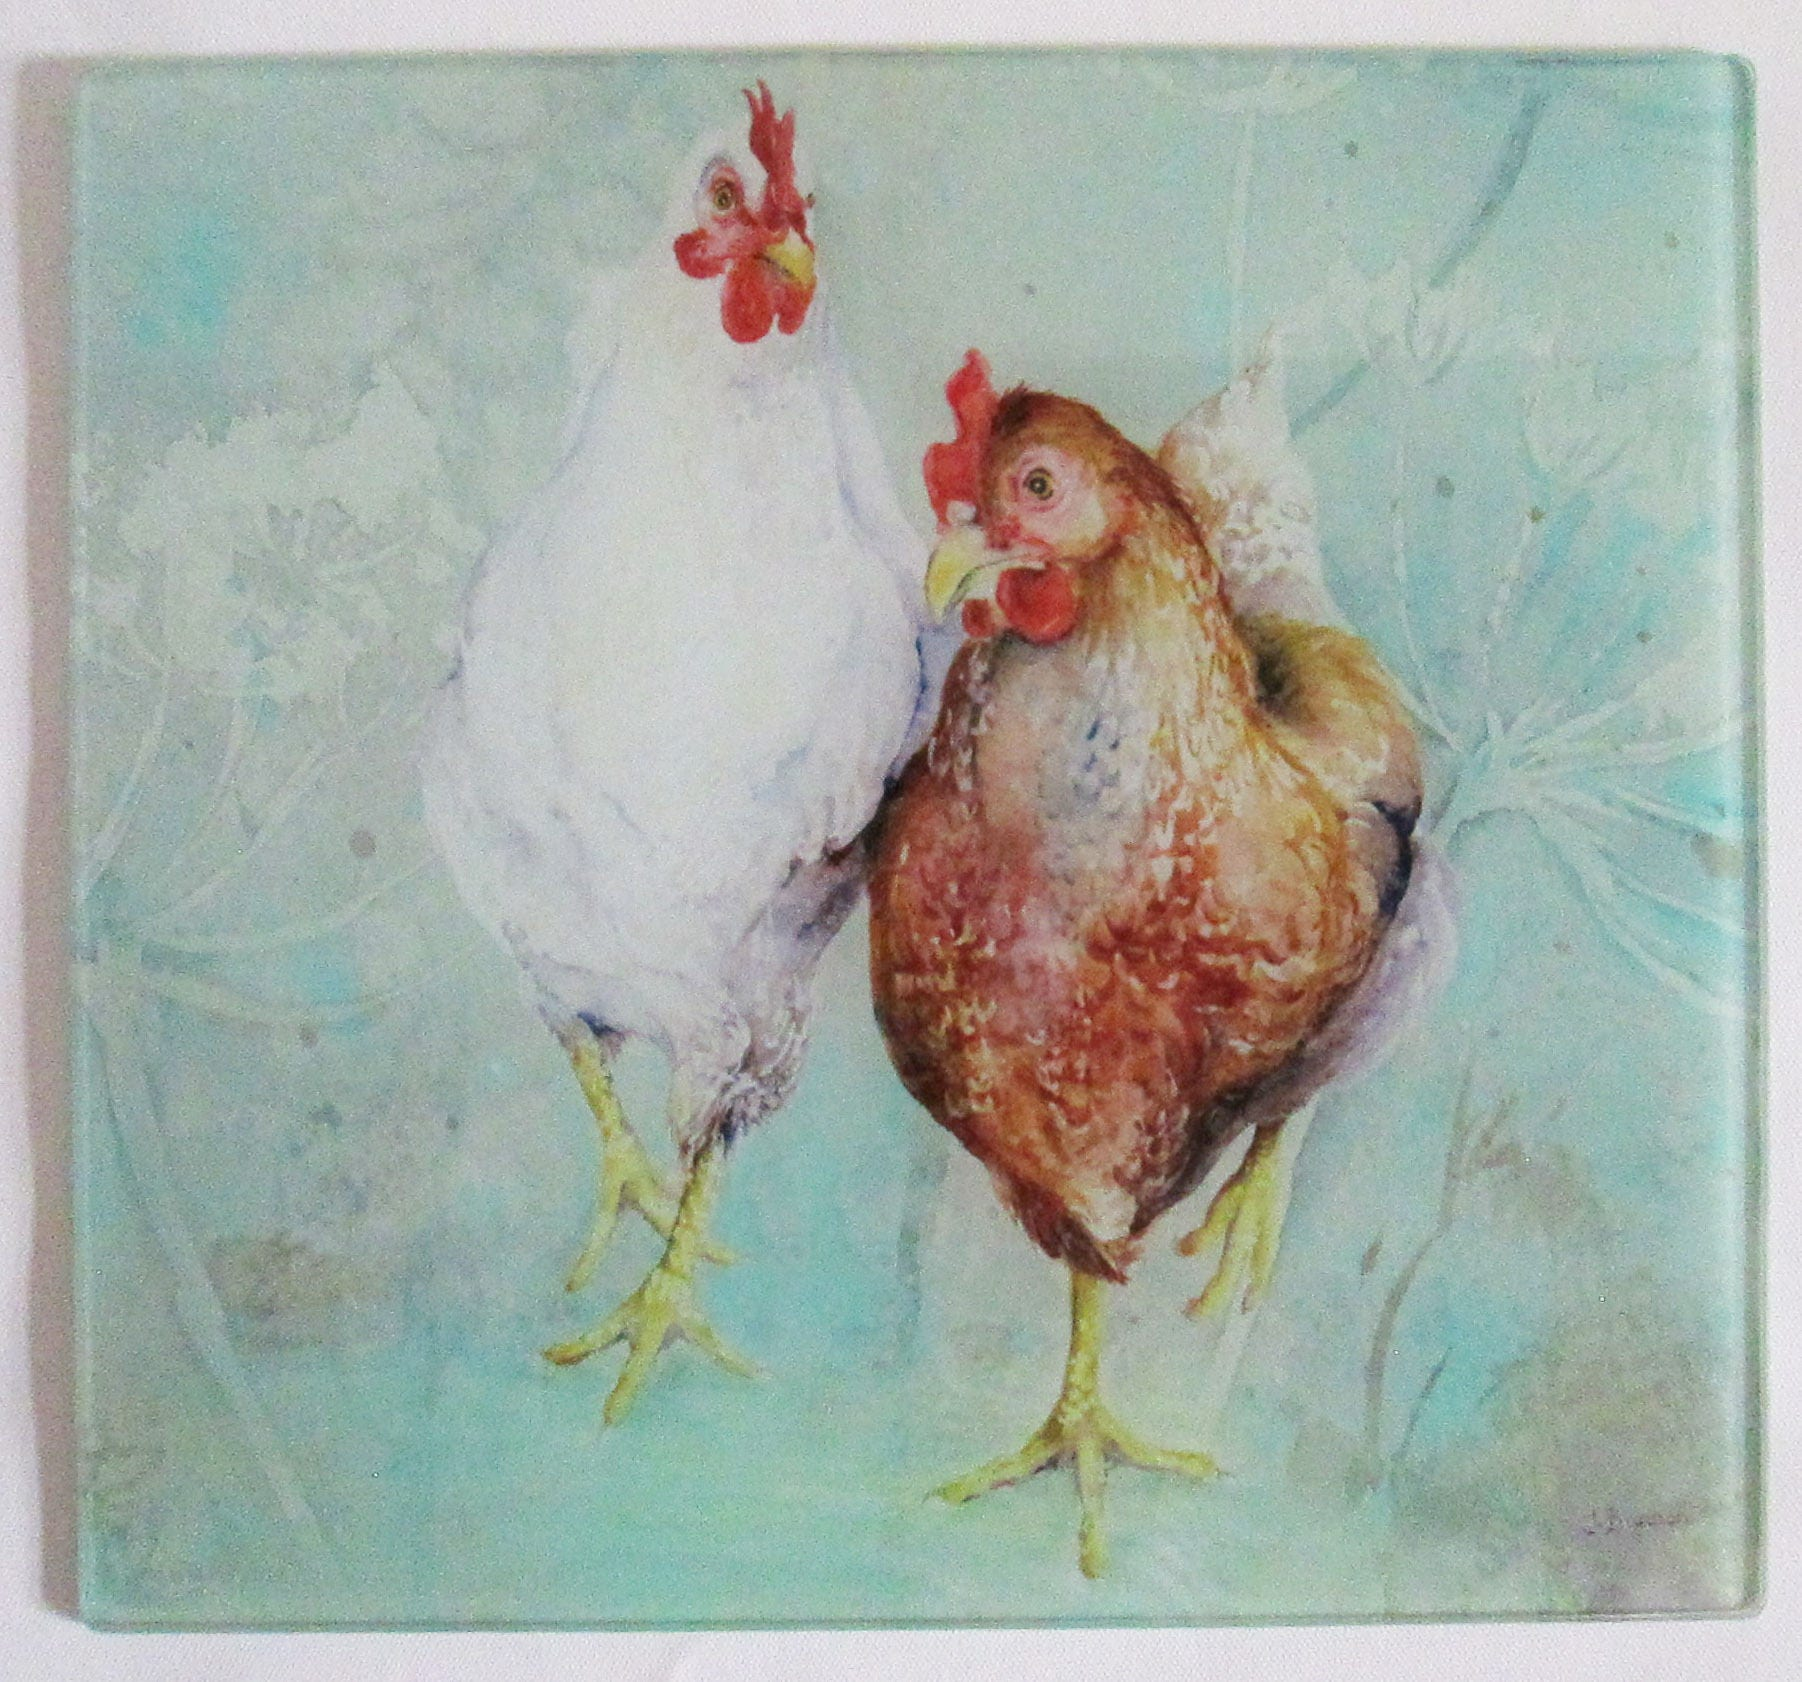 Chickens glass chopping board cutting board worktop saver